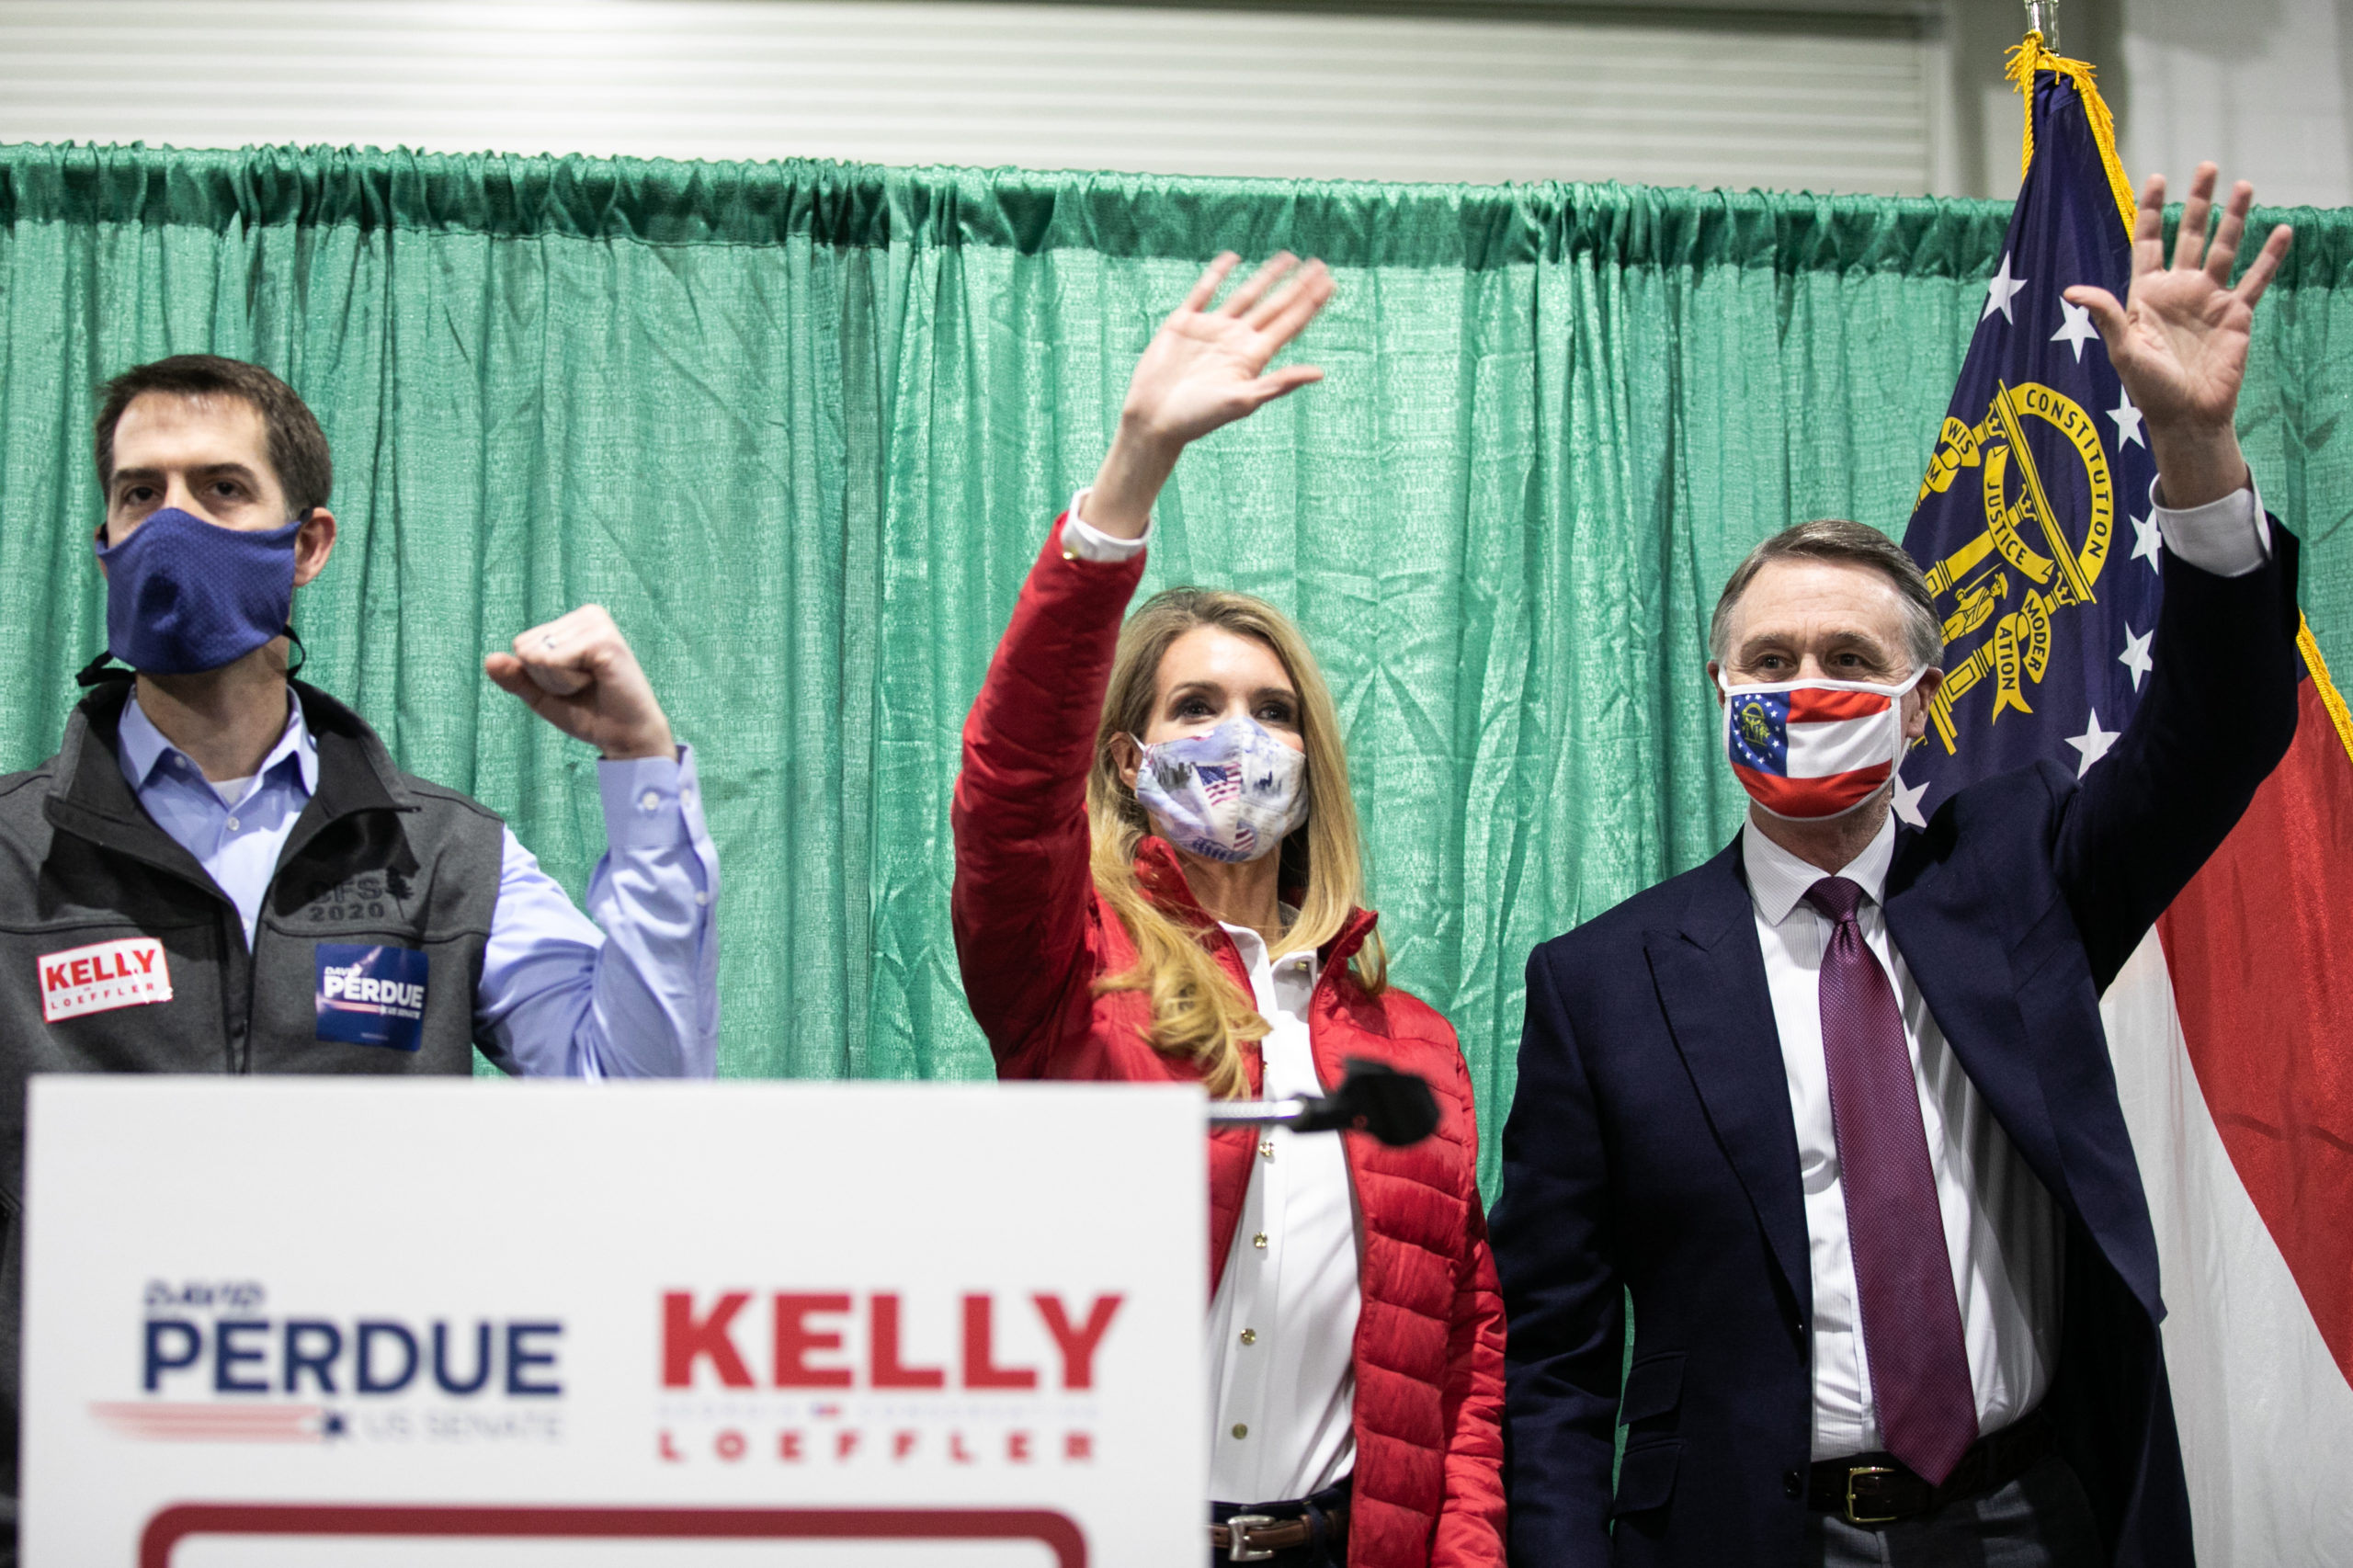 """U.S. Sen. David Purdue (R-GA) and Sen. Kelly Loeffler (R-GA) wave to the crowd of supporters at a """"Defend the Majority"""" rally with Sen. Tom Cotton (R-AR) at the Georgia National Fairgrounds and Agriculture Center on November 19, 2020 in Perry, Georgia. (Jessica McGowan/Getty Images)"""